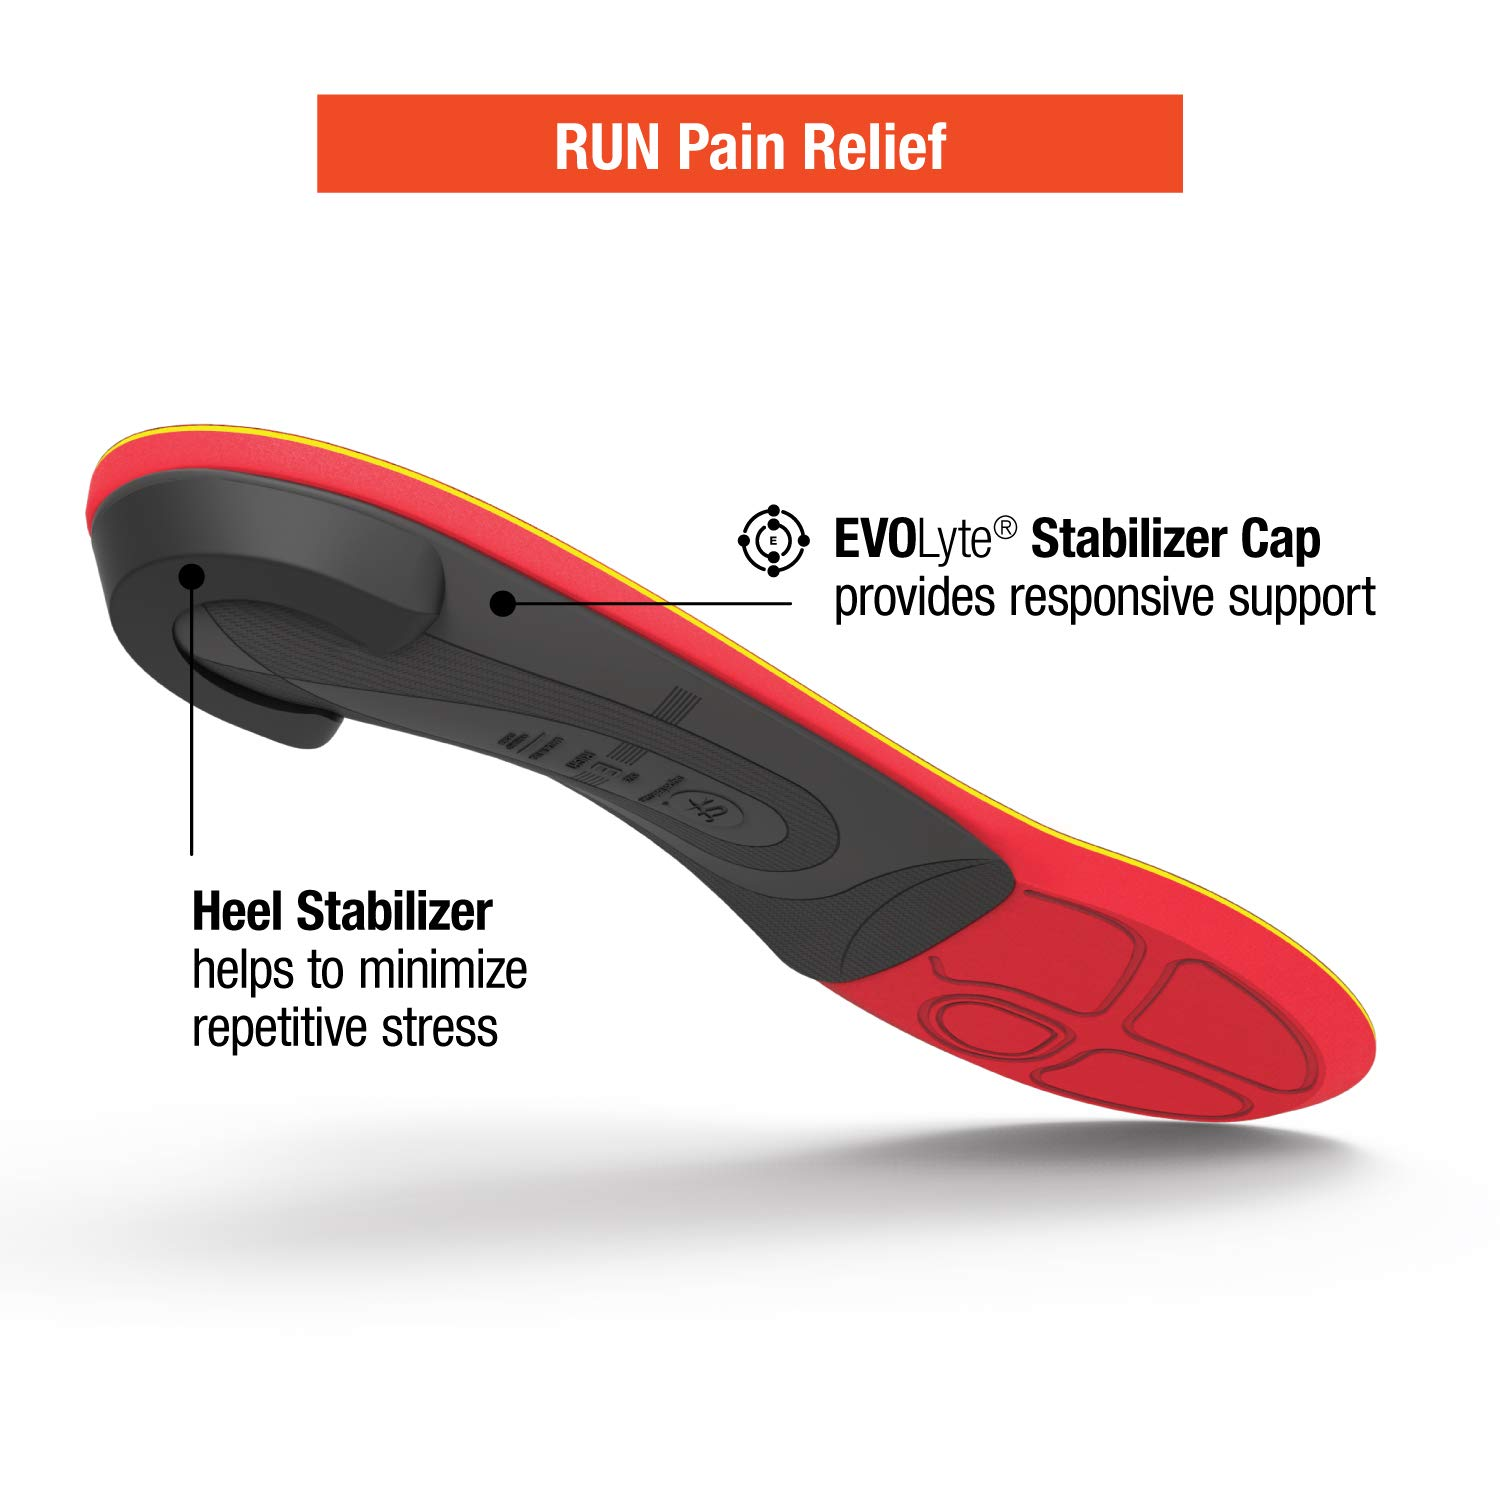 Superfeet Run Pain Relief Insoles, Customizable Heel Stability Professional-Grade Orthotic Insert for Maximum Support, Tangerine, B: 4.5-6 US Womens / 2.5-4 US Juniors by Superfeet (Image #4)